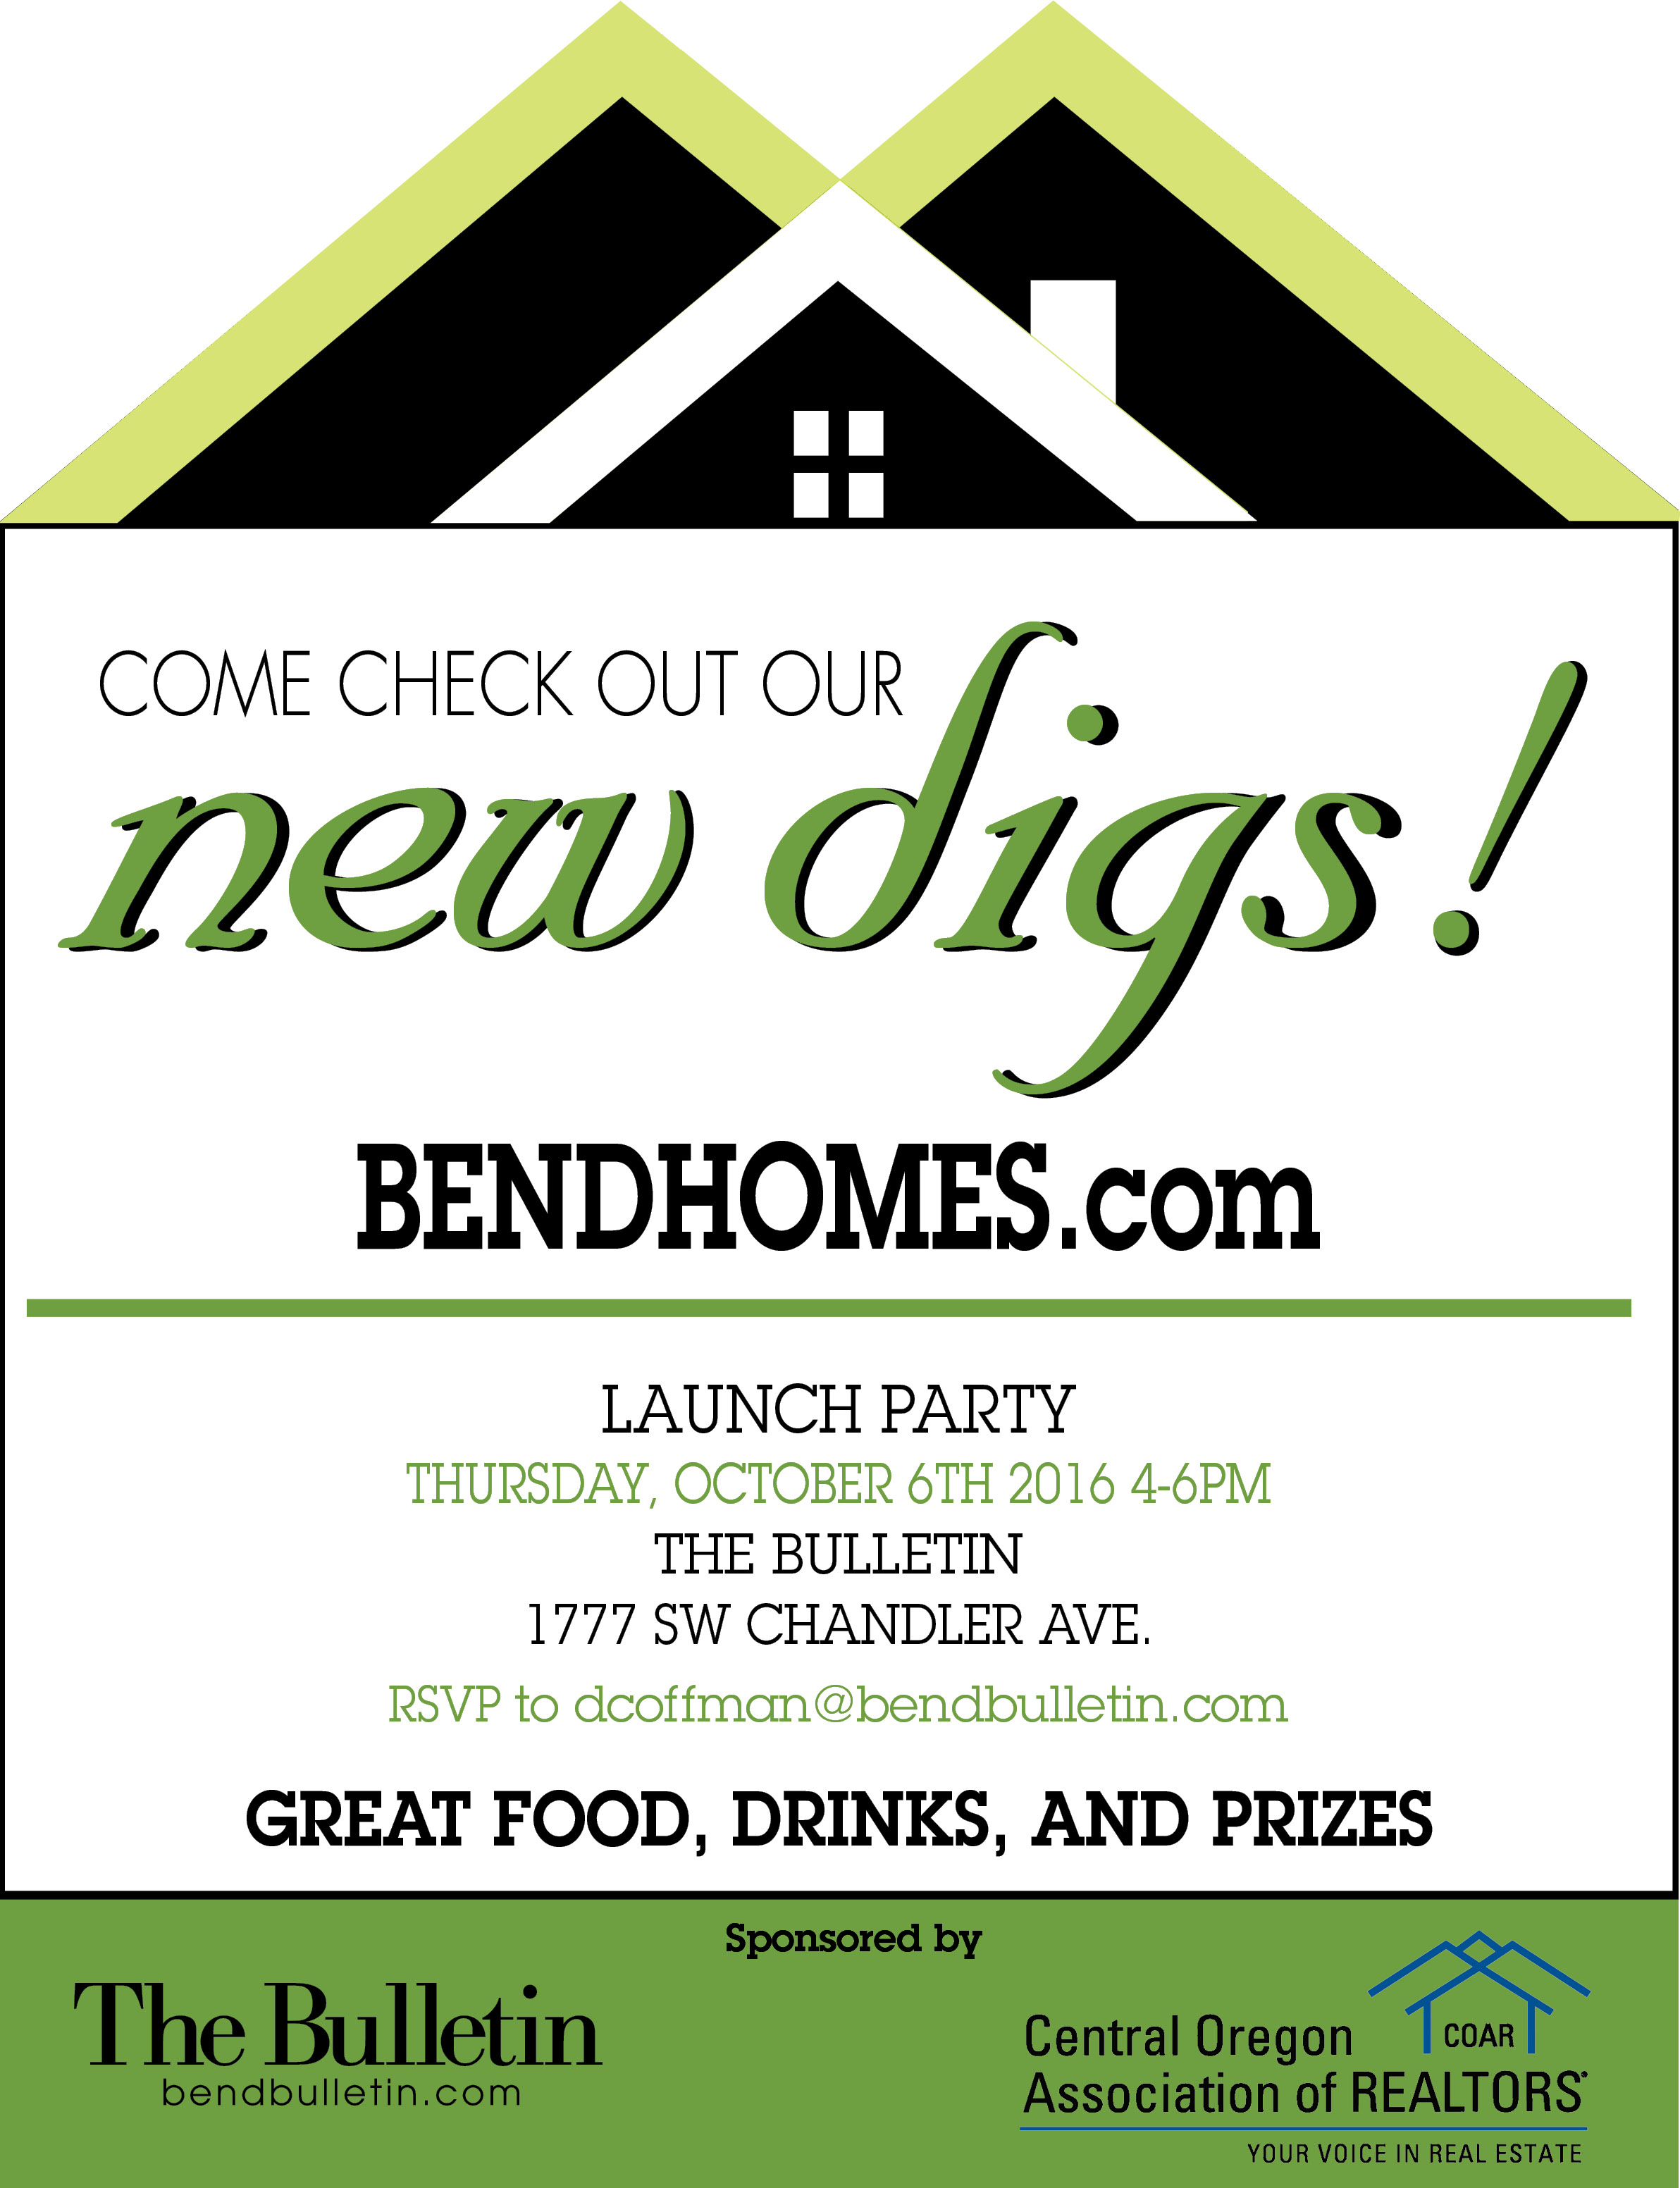 bendhomes Launch Party Invite 1